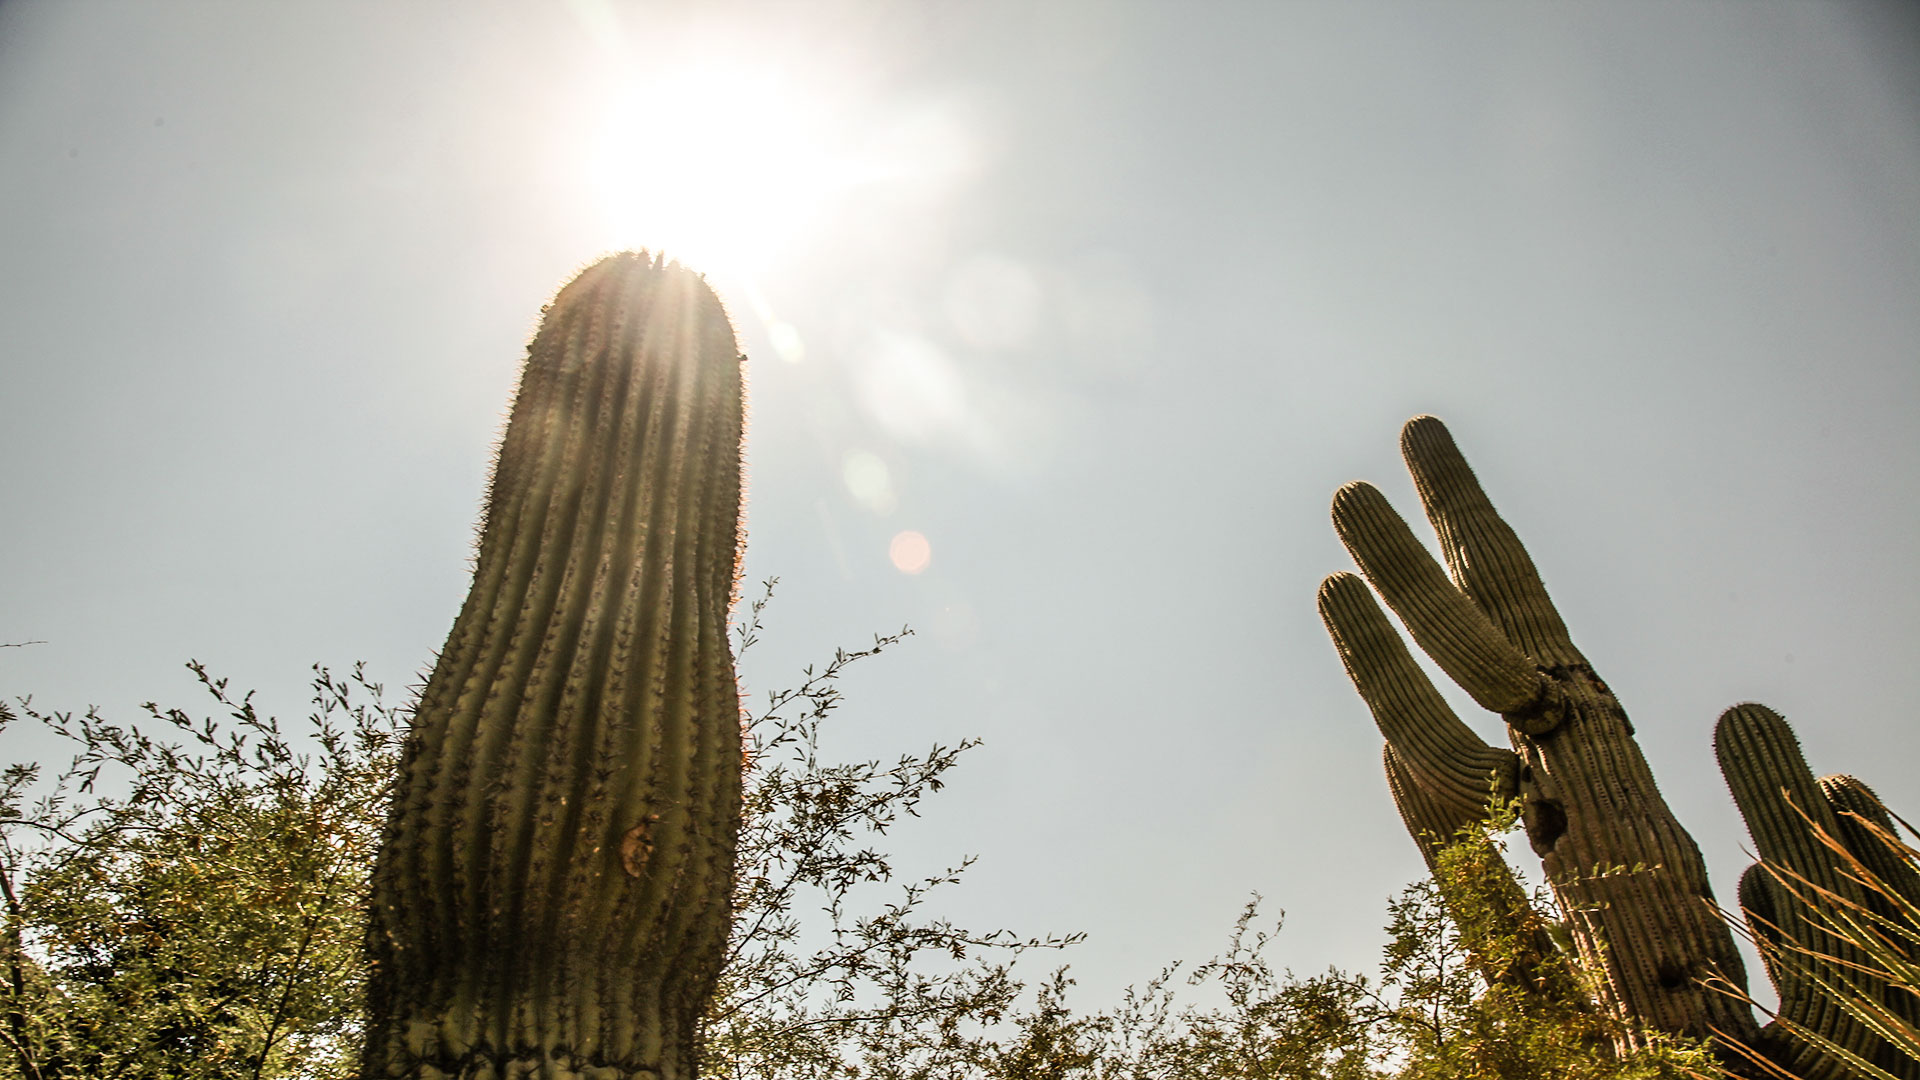 Hot heat sun temperature cactus saguaro